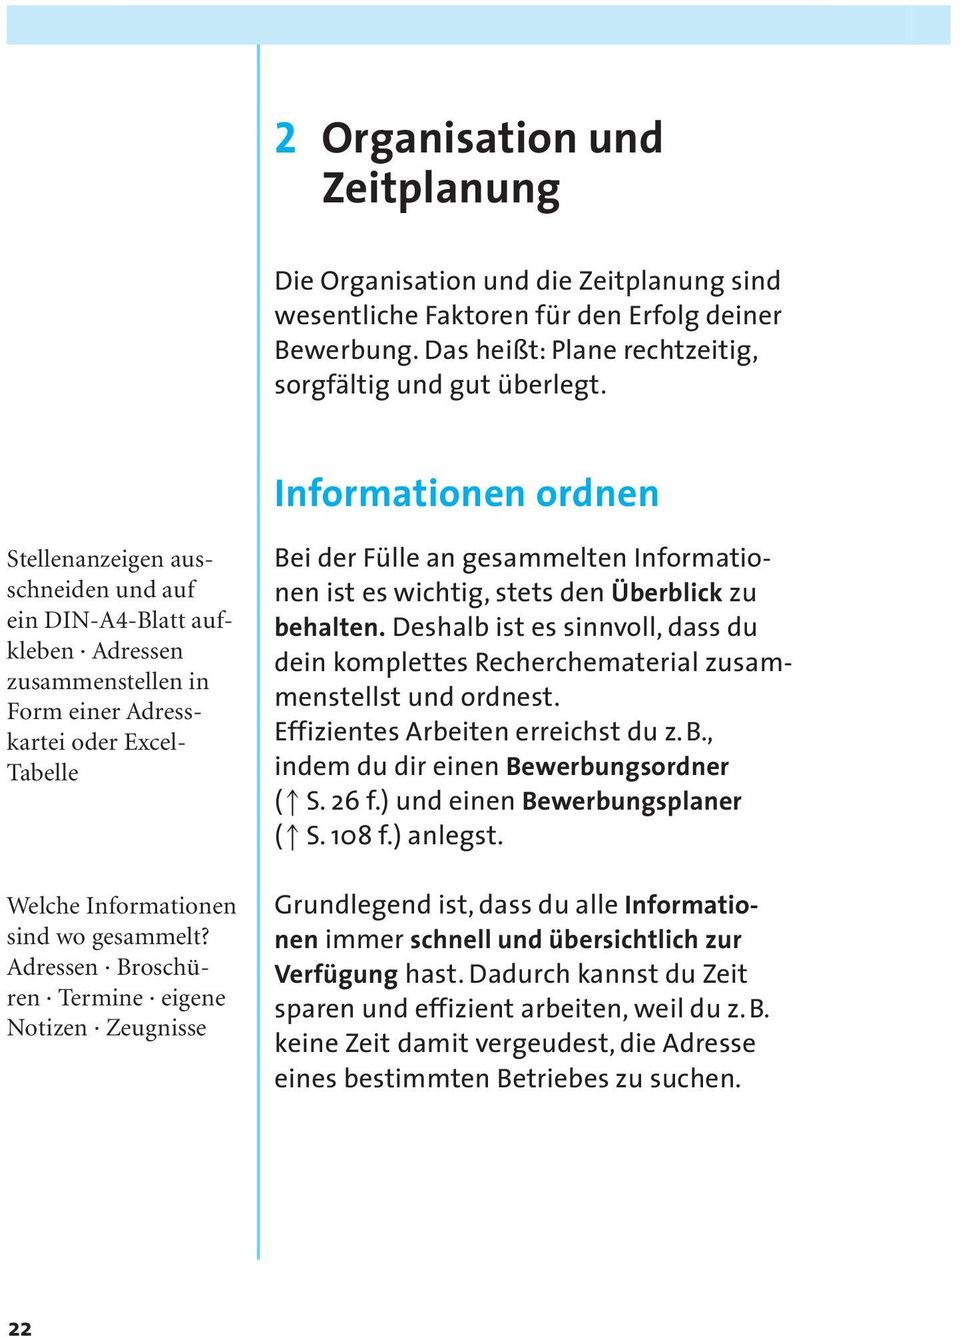 Adressen Broschüren Termine eigene Notizen Zeugnisse Bei der Fülle an  gesammelten Informationen ist es wichtig,